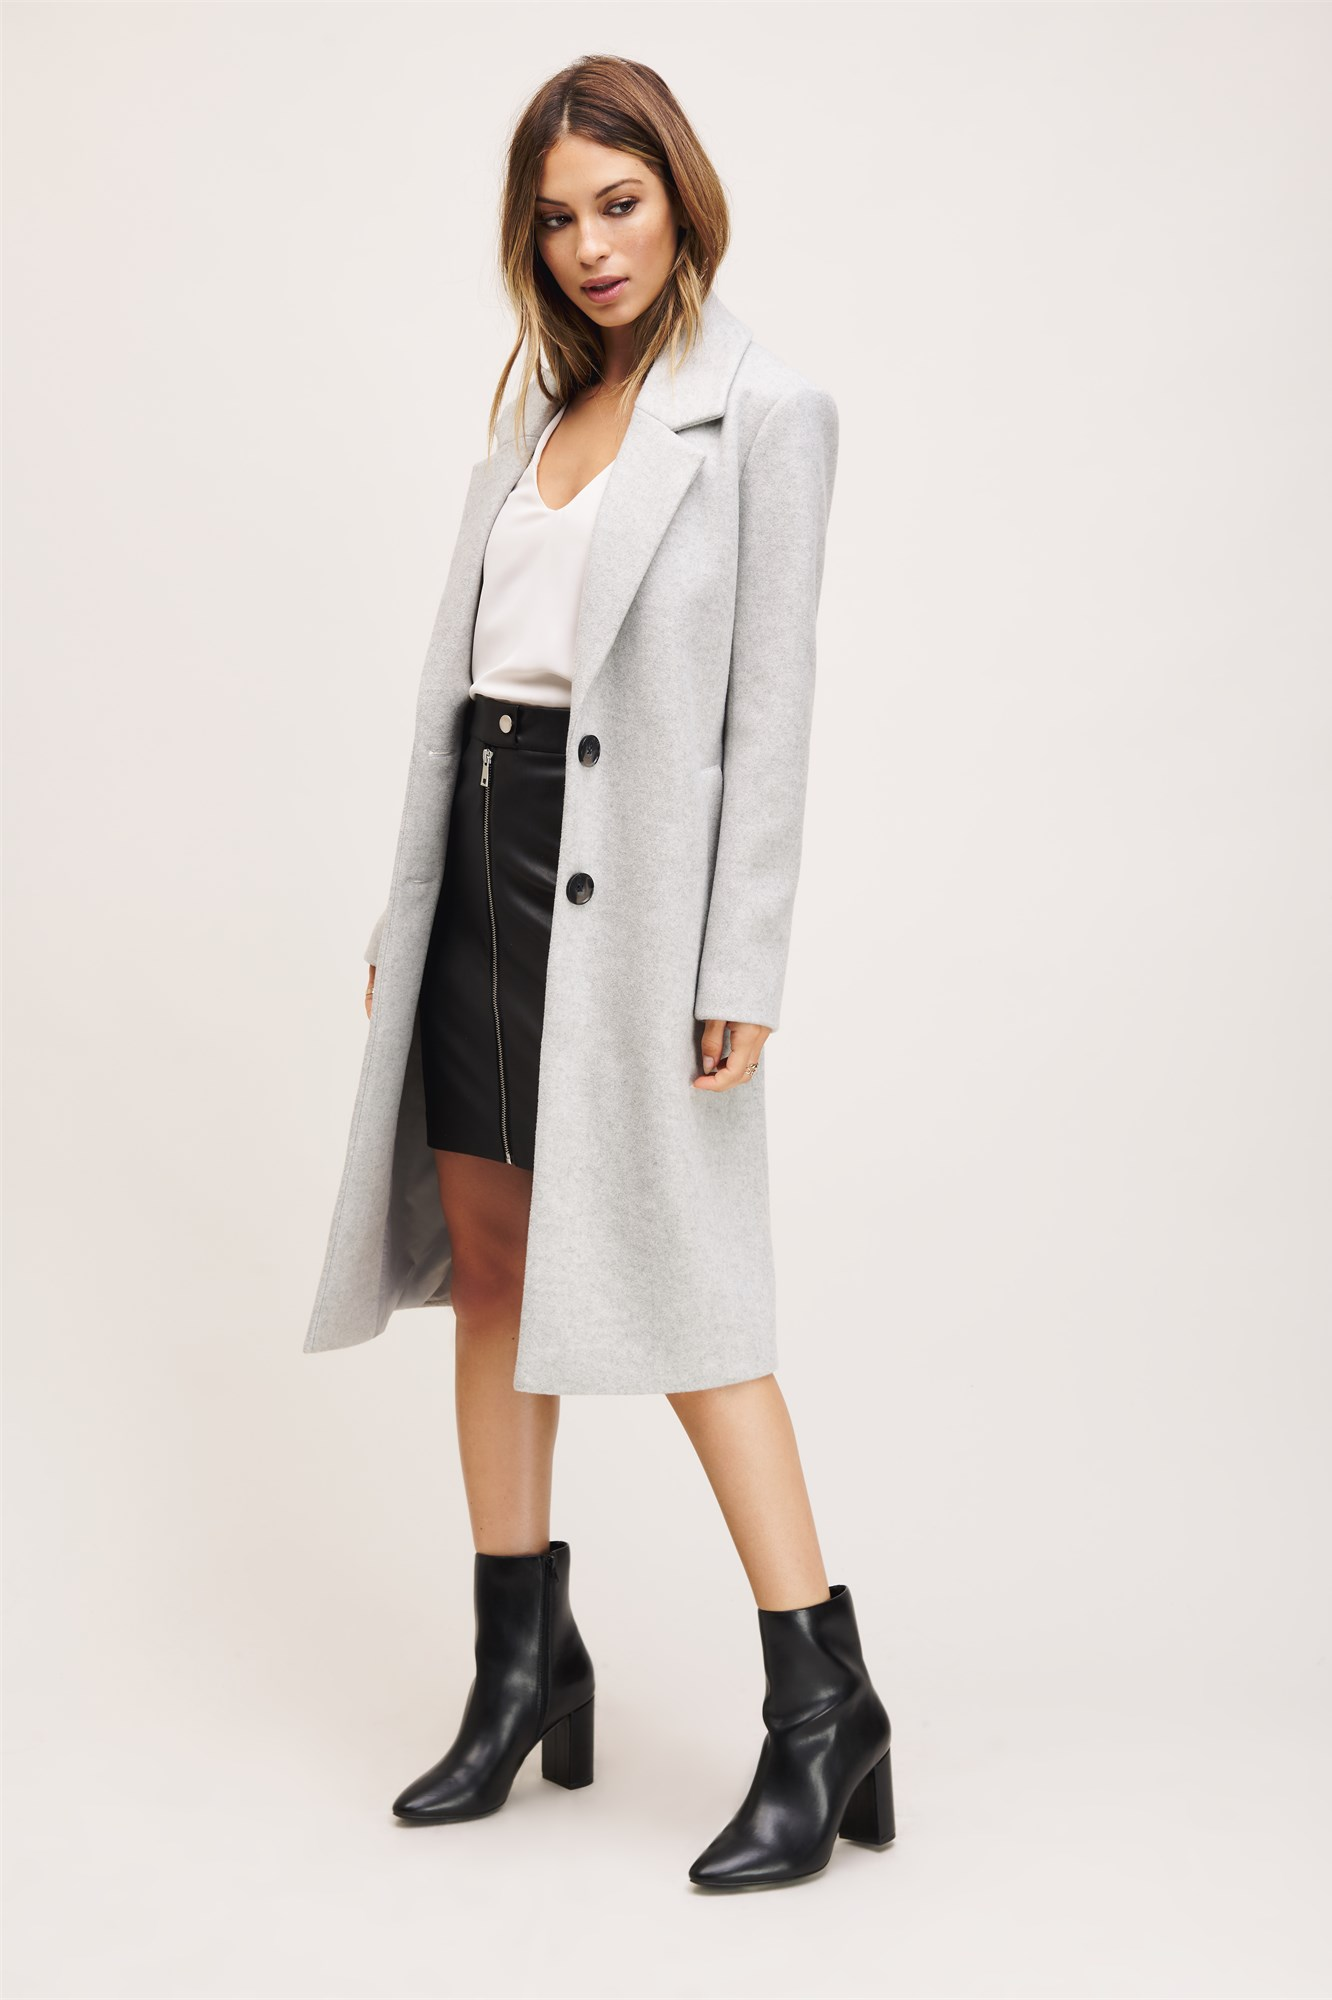 The Yorkville Coat by Dynamite